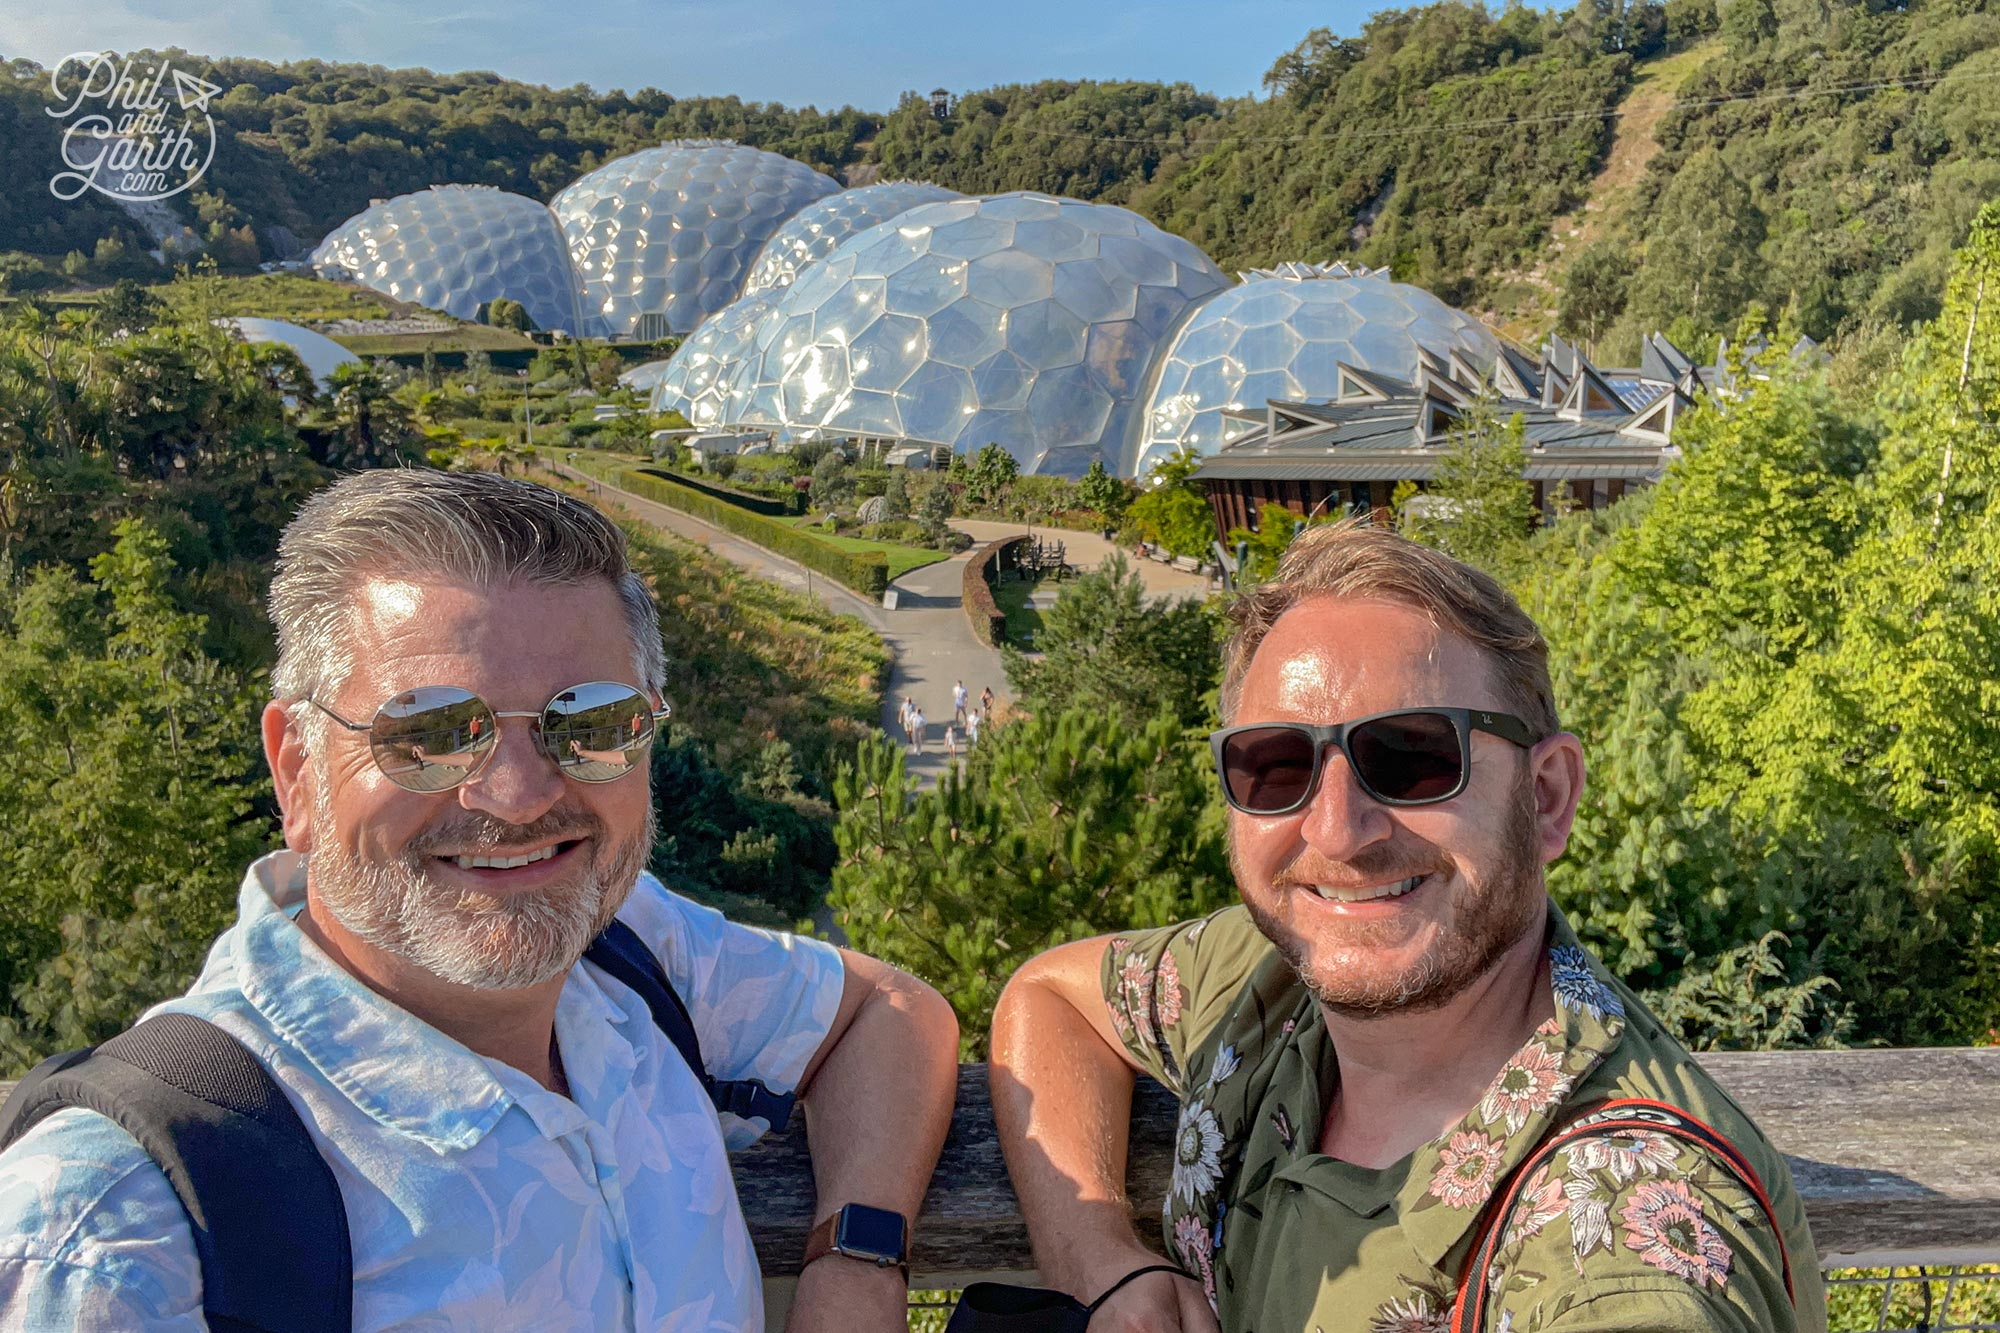 The Eden Project Cornwall England Practical Information and Advice